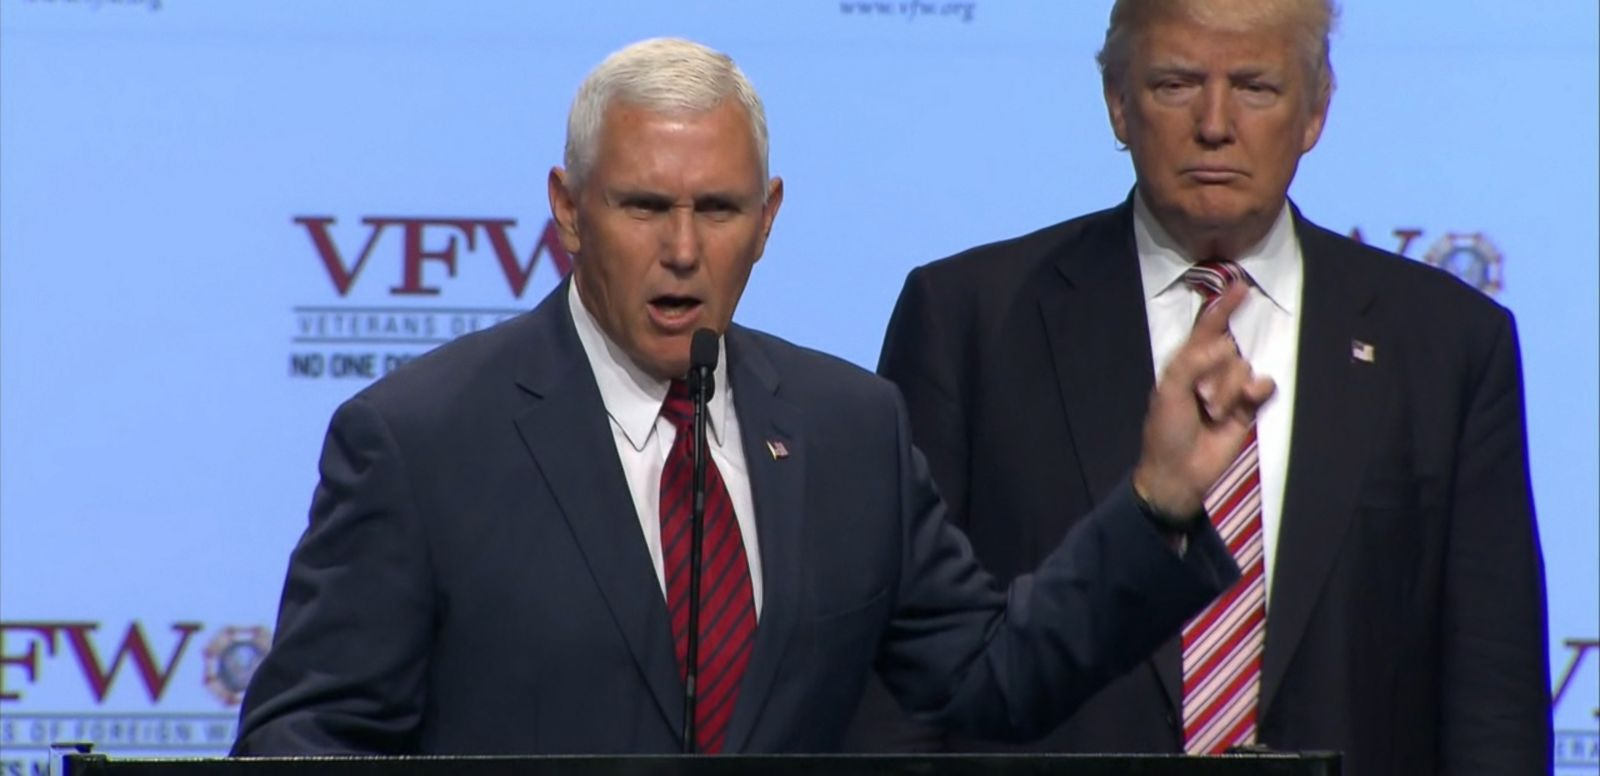 The vice presidential nominee made the comments to the Veterans of Foreign Wars.